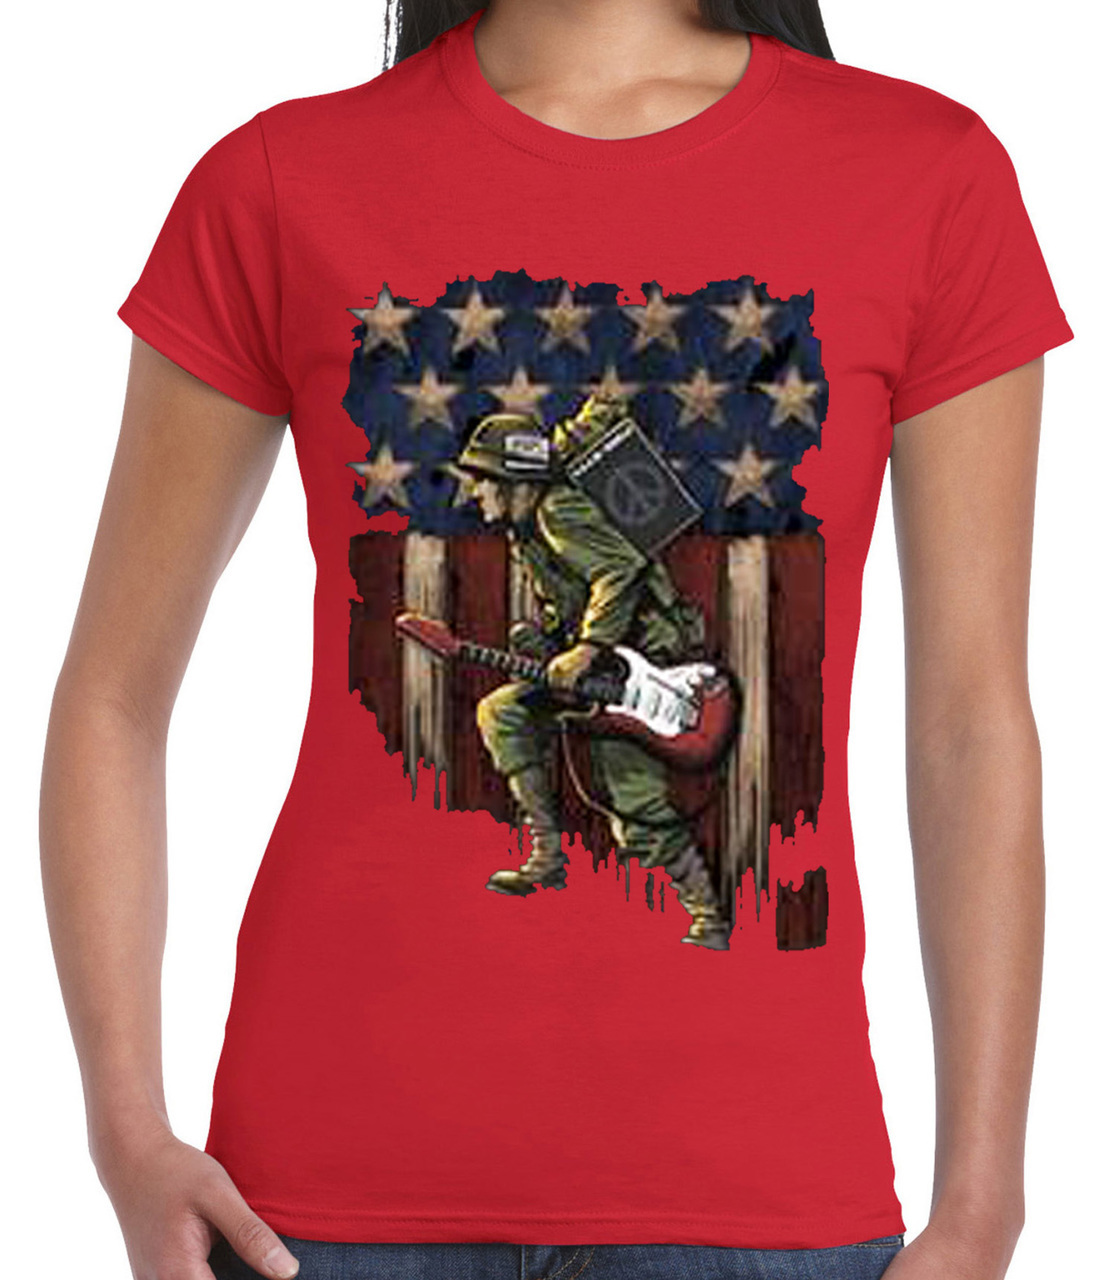 Rebel With A Cause Women's Short Sleeve T-Shirt